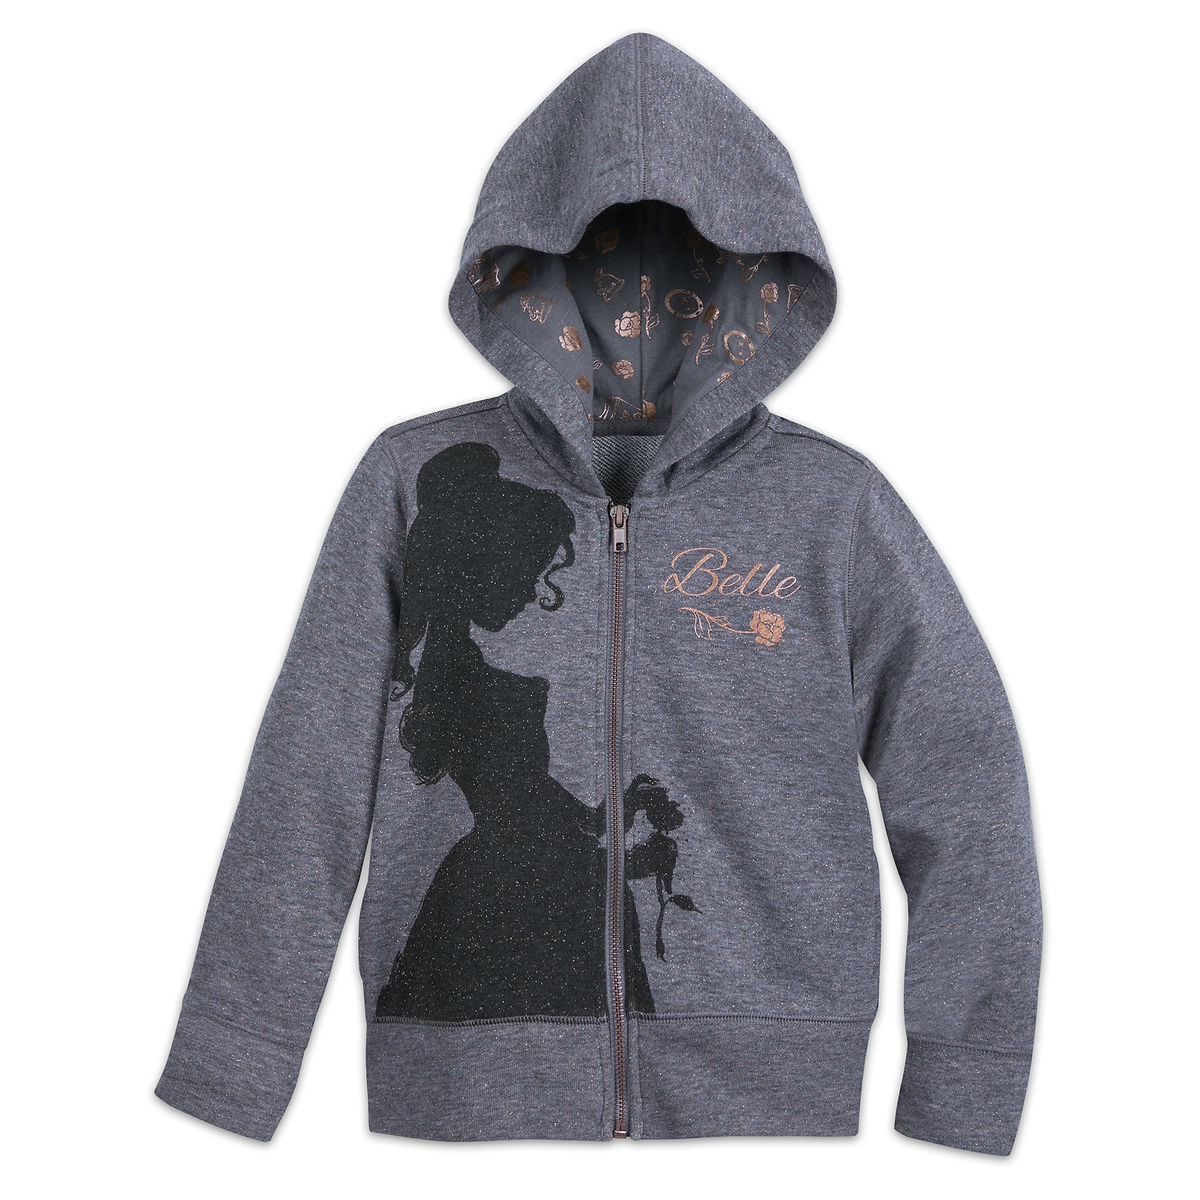 Belle Zip Up Hooded Sweatshirt For Girls Beauty And The Beast